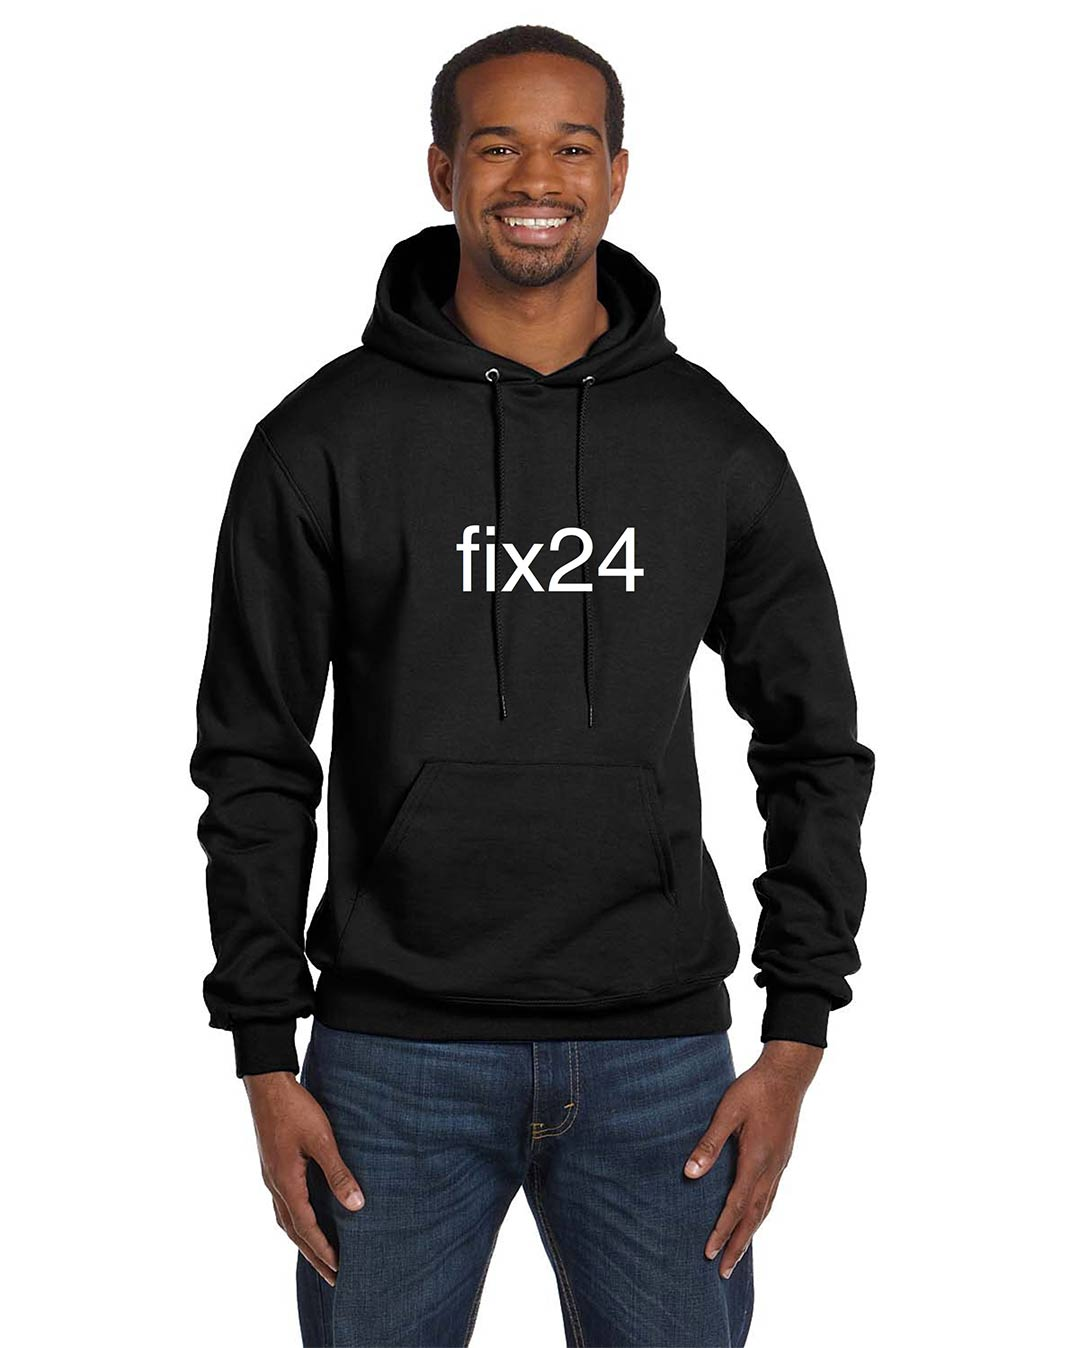 custom design of Champion S700 Double Dry Eco Hooded Sweatshirt